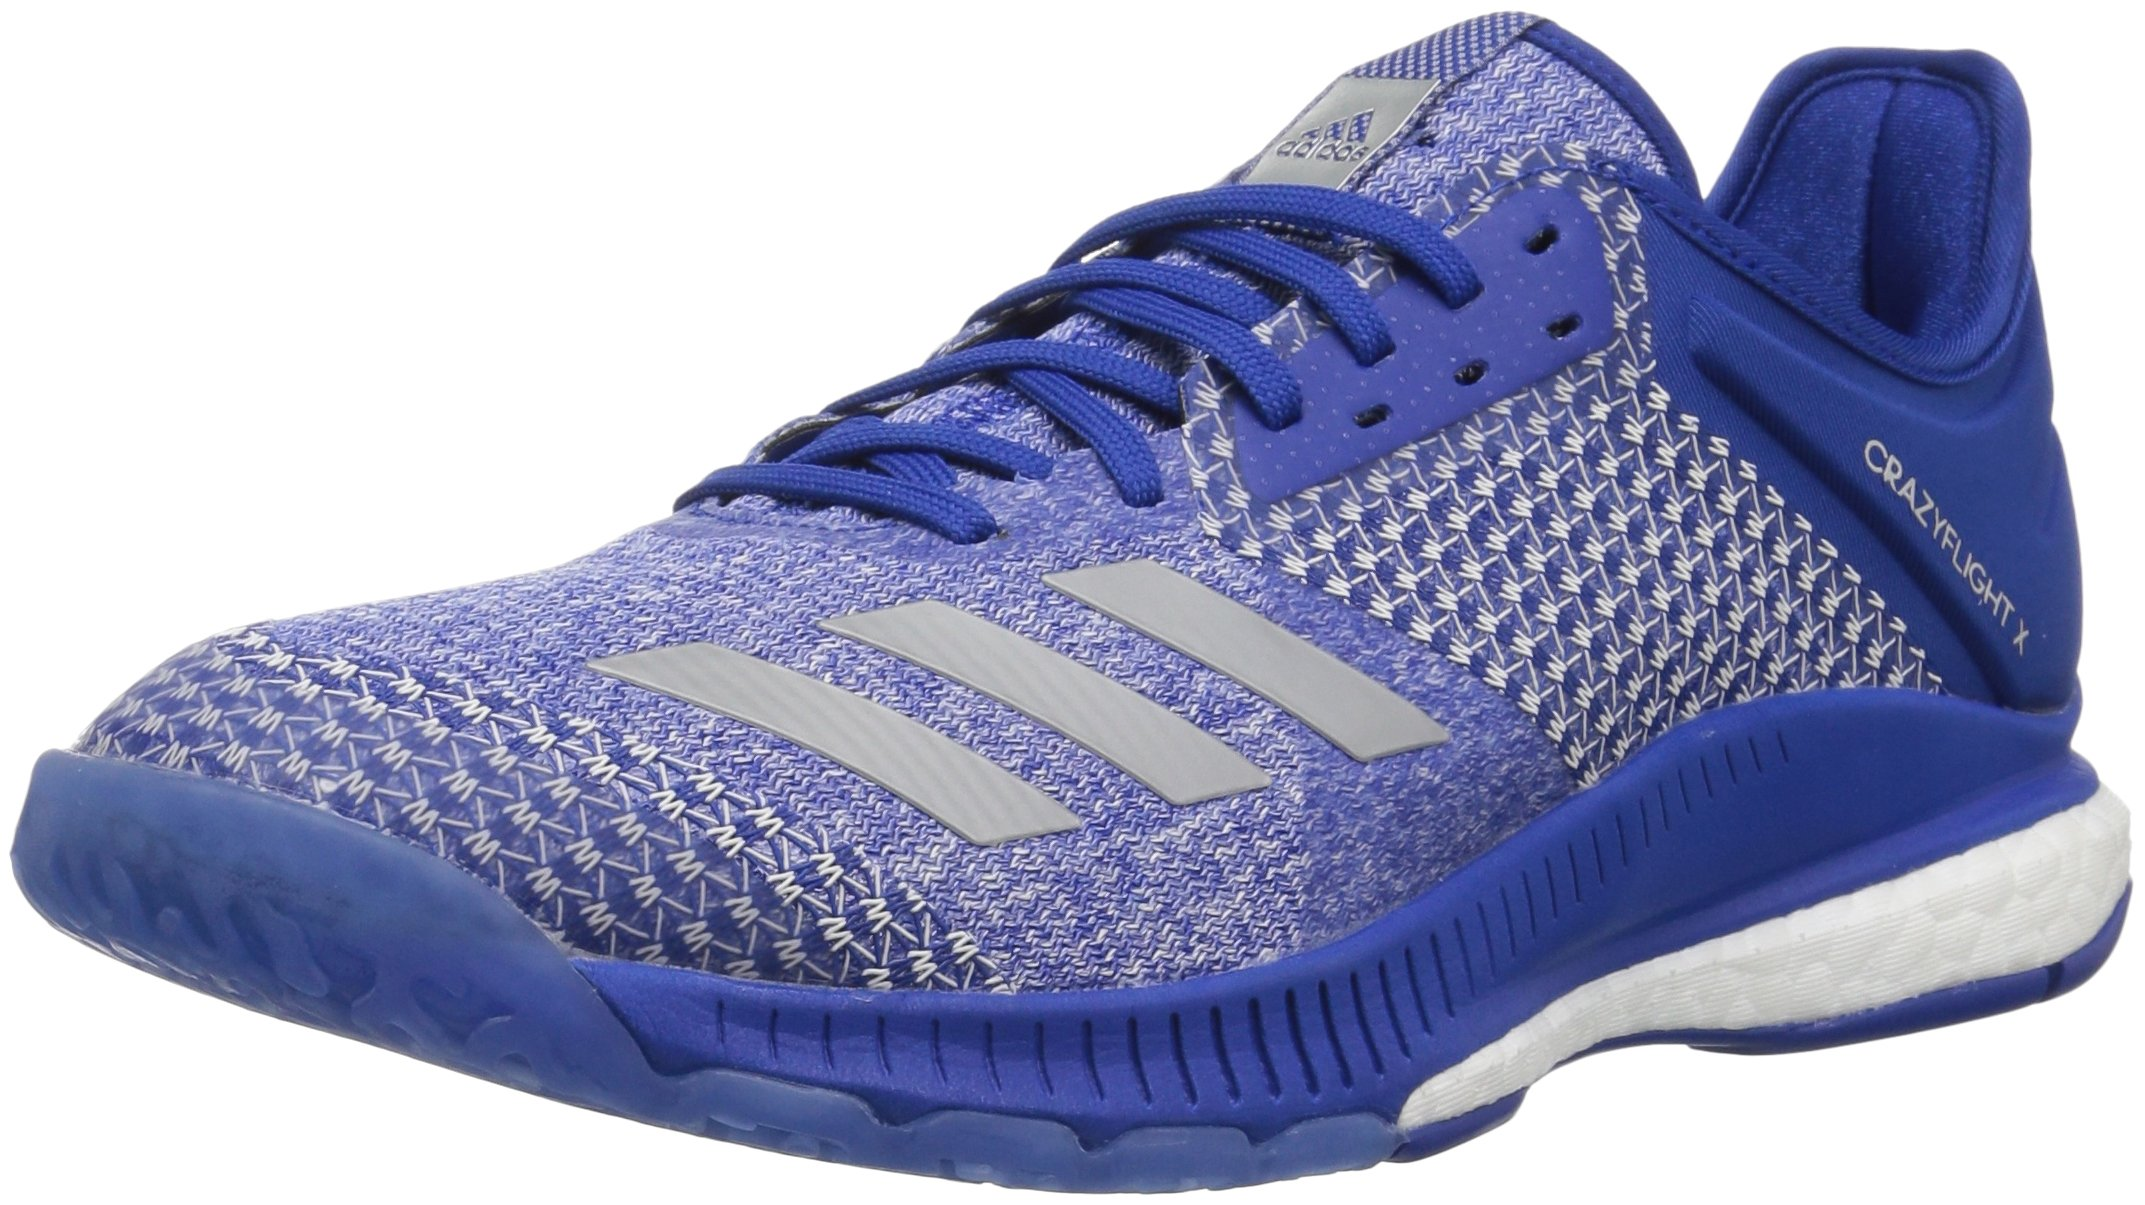 adidas Women's Crazyflight X 2 Volleyball Shoe, Collegiate Royal/Silver Metallic/White, 5 M US